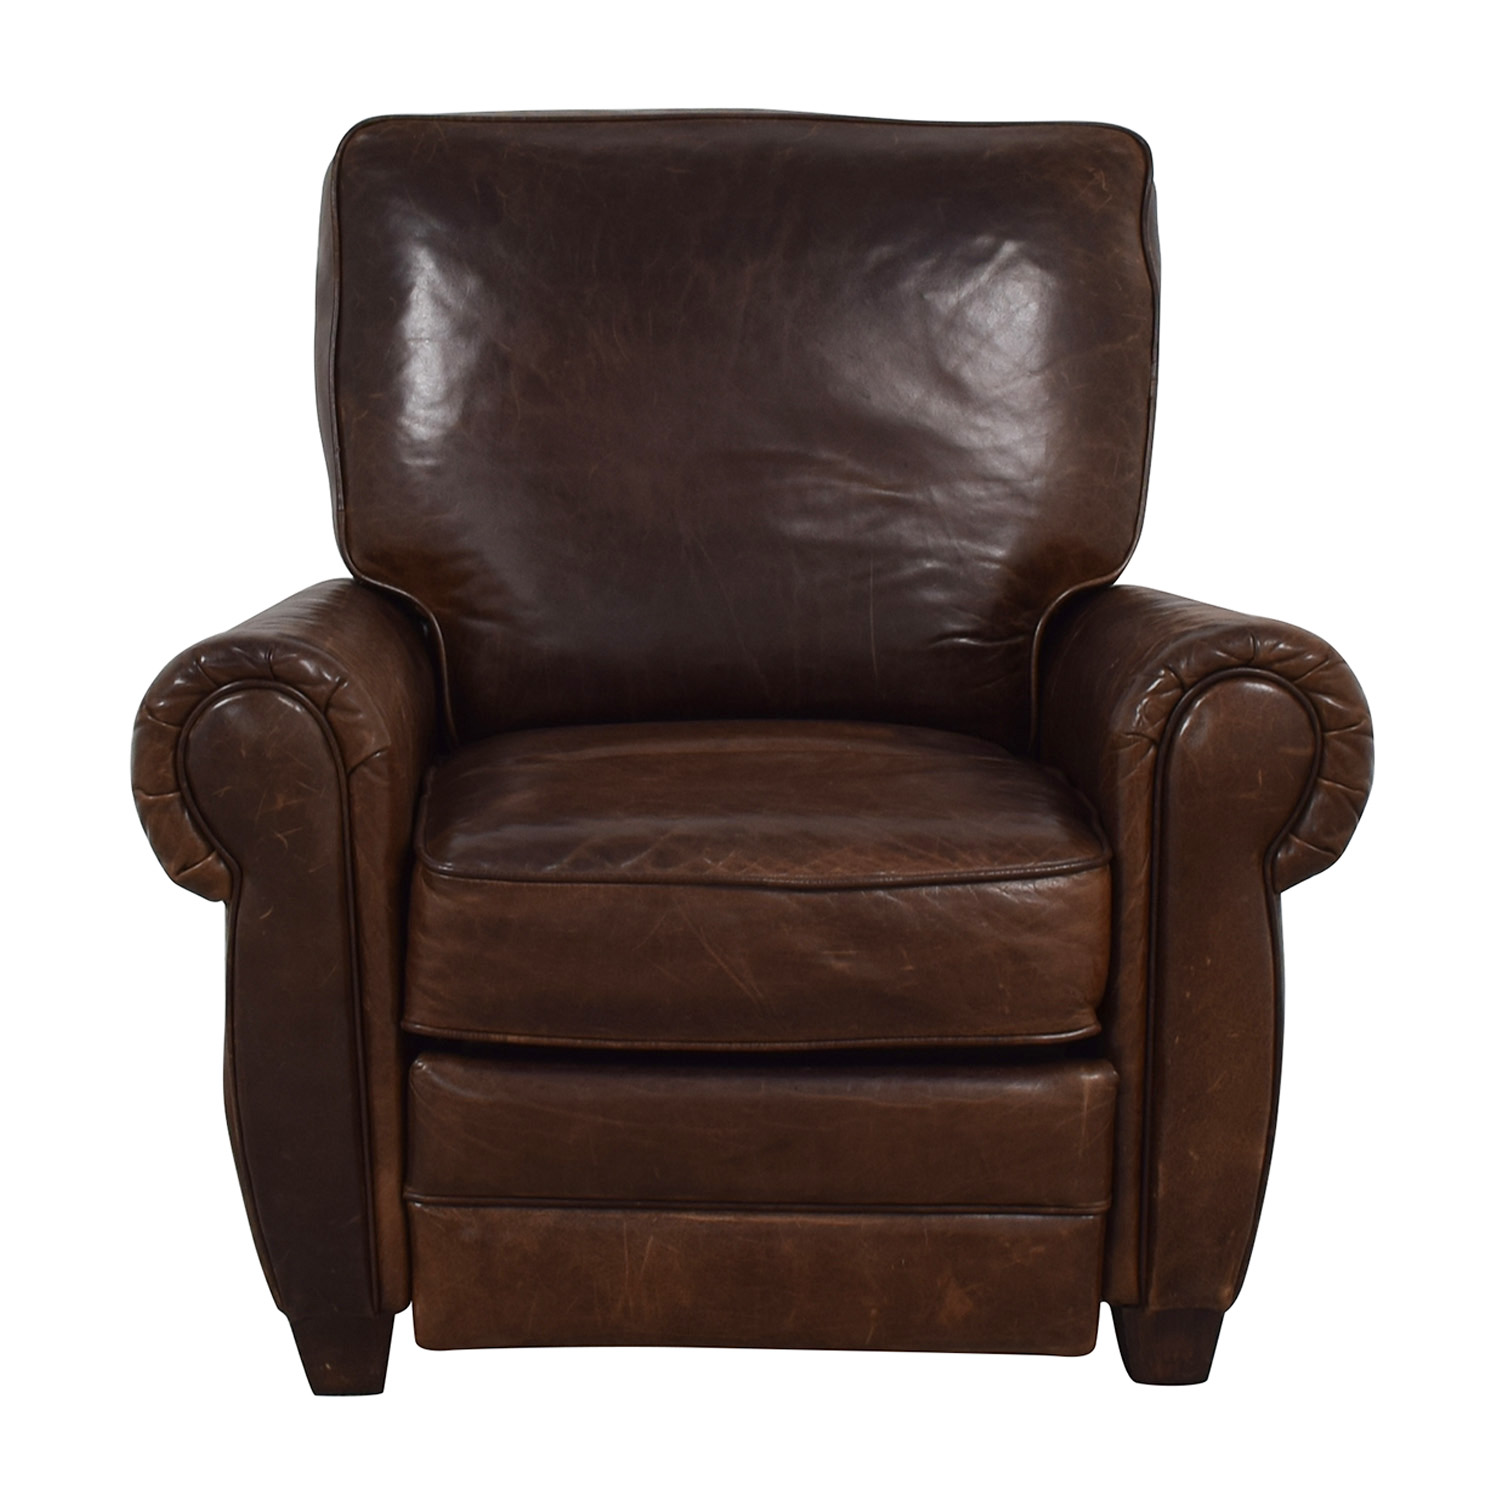 Cool 73 Off Pottery Barn Pottery Barn Brown Leather Recliner Chairs Pdpeps Interior Chair Design Pdpepsorg